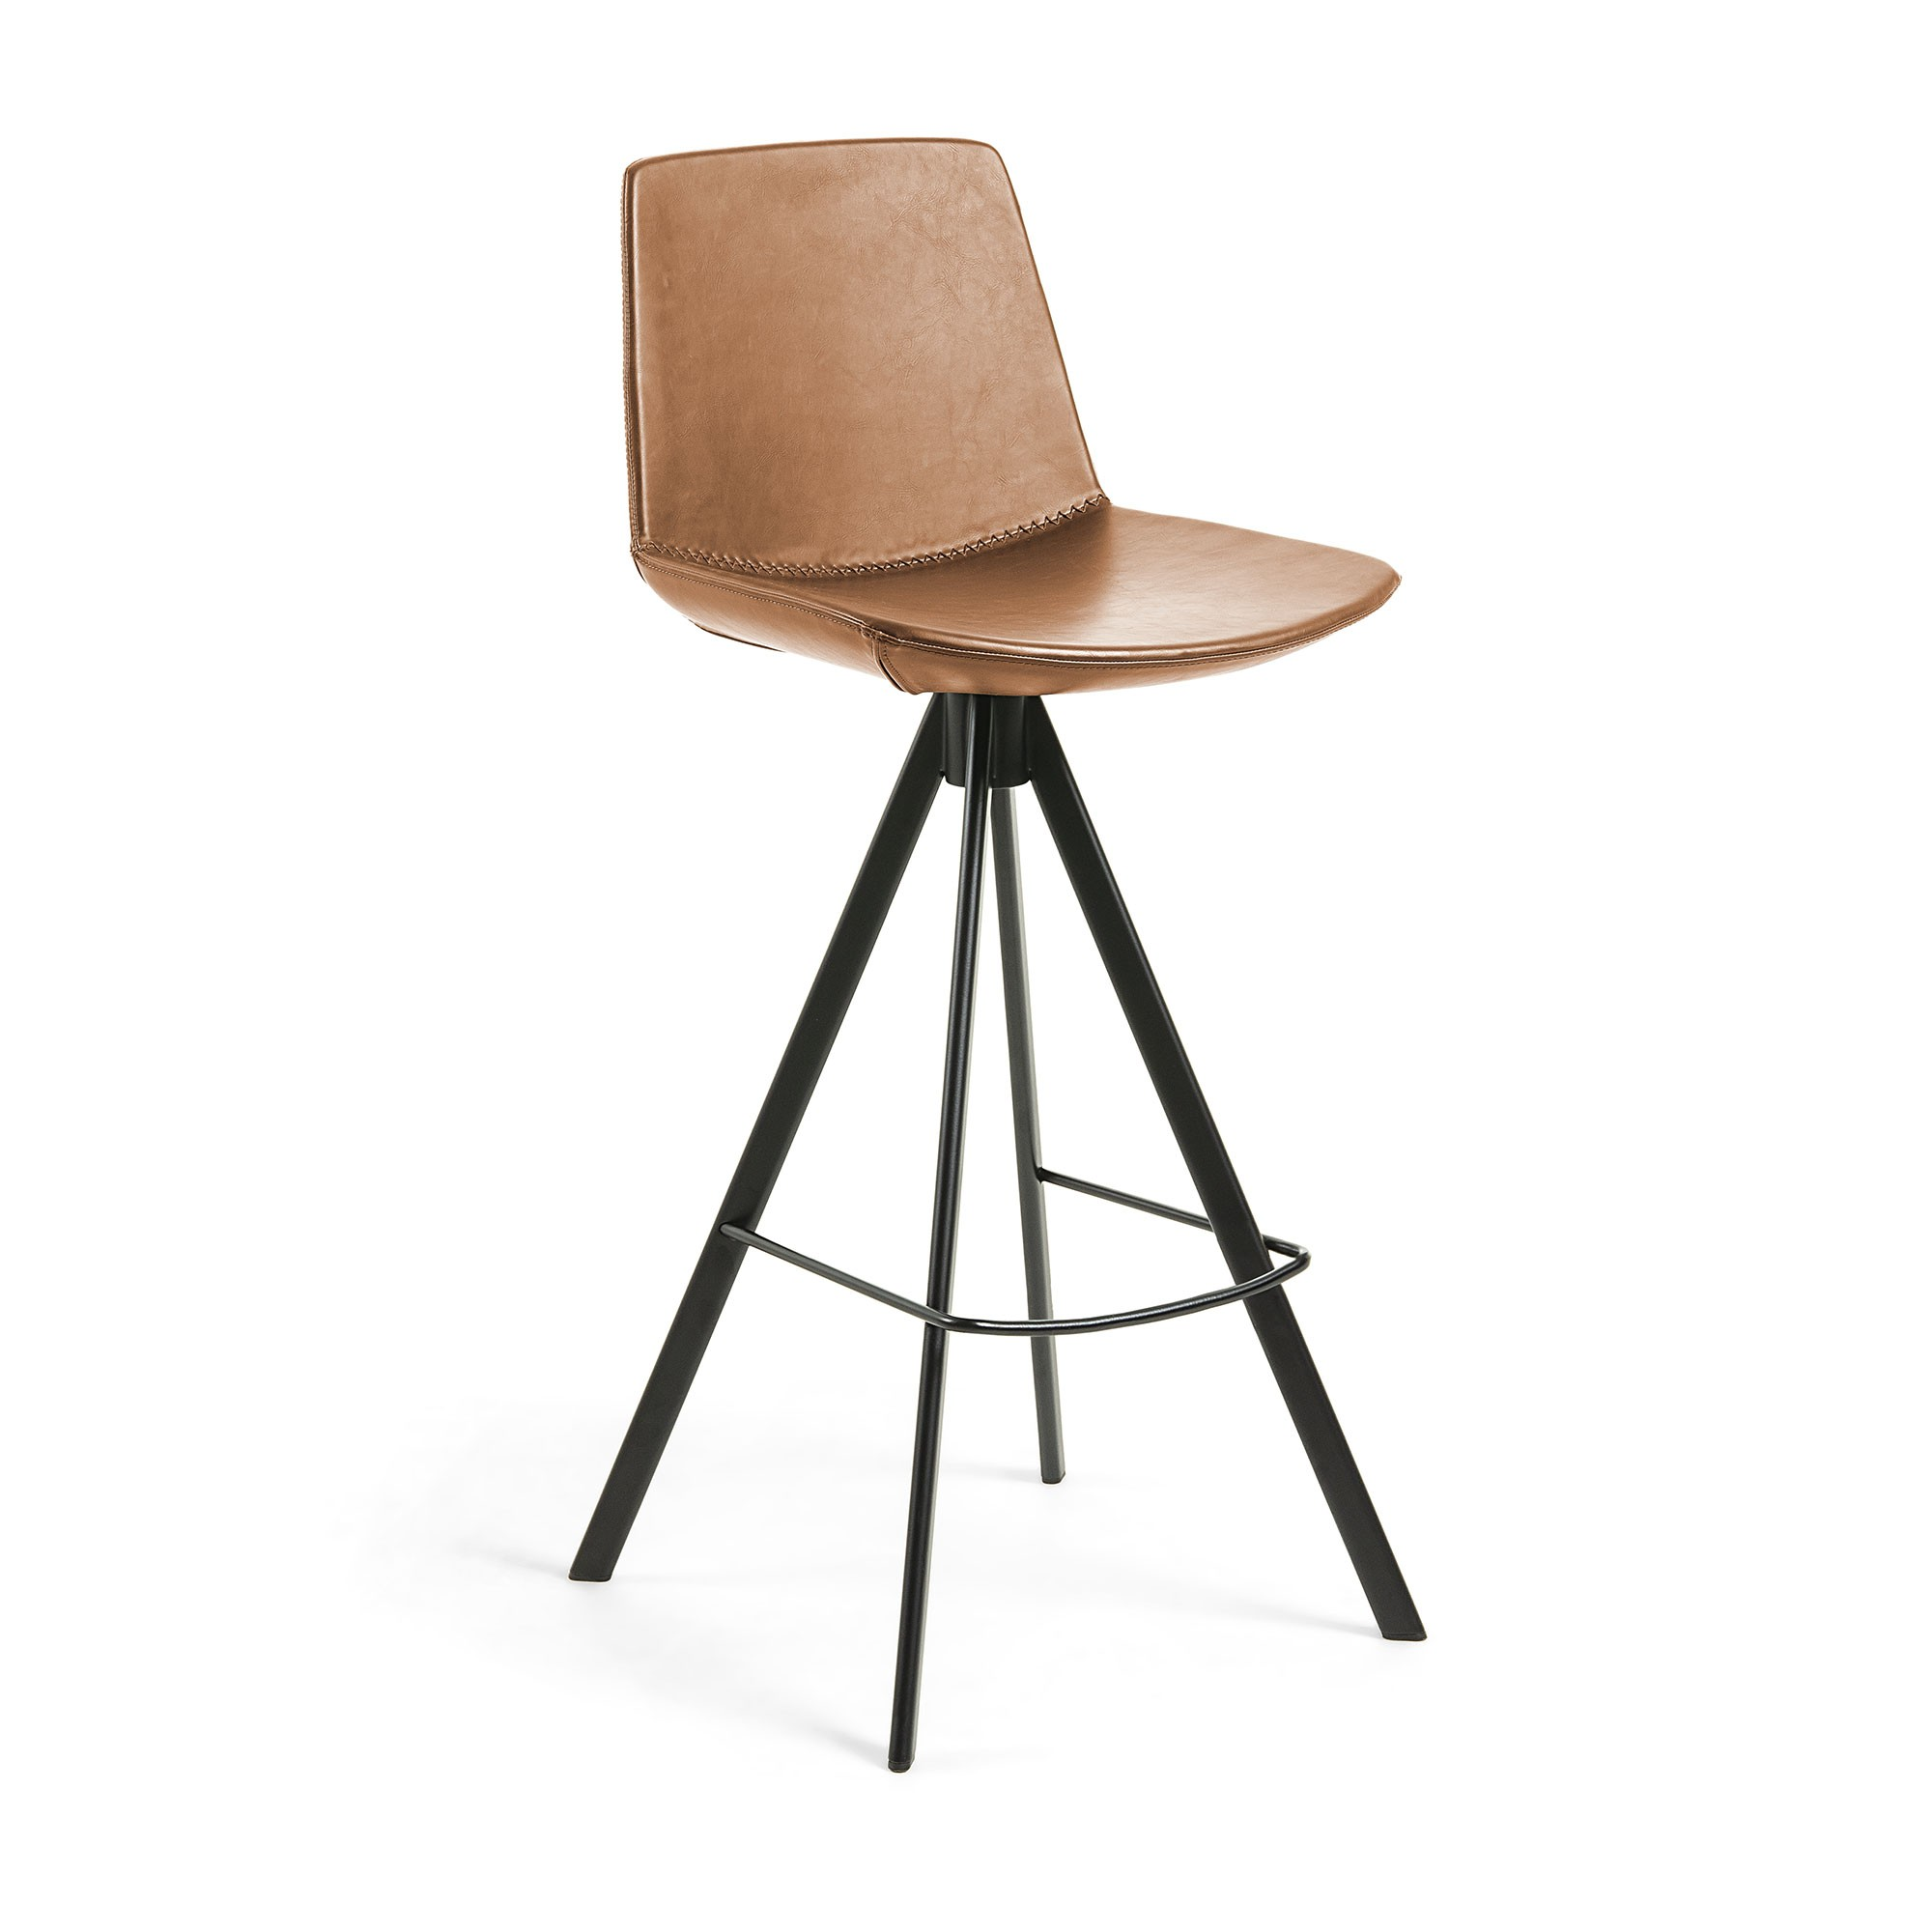 Eurobin PU Leather & Steel Counter Stool, Tan